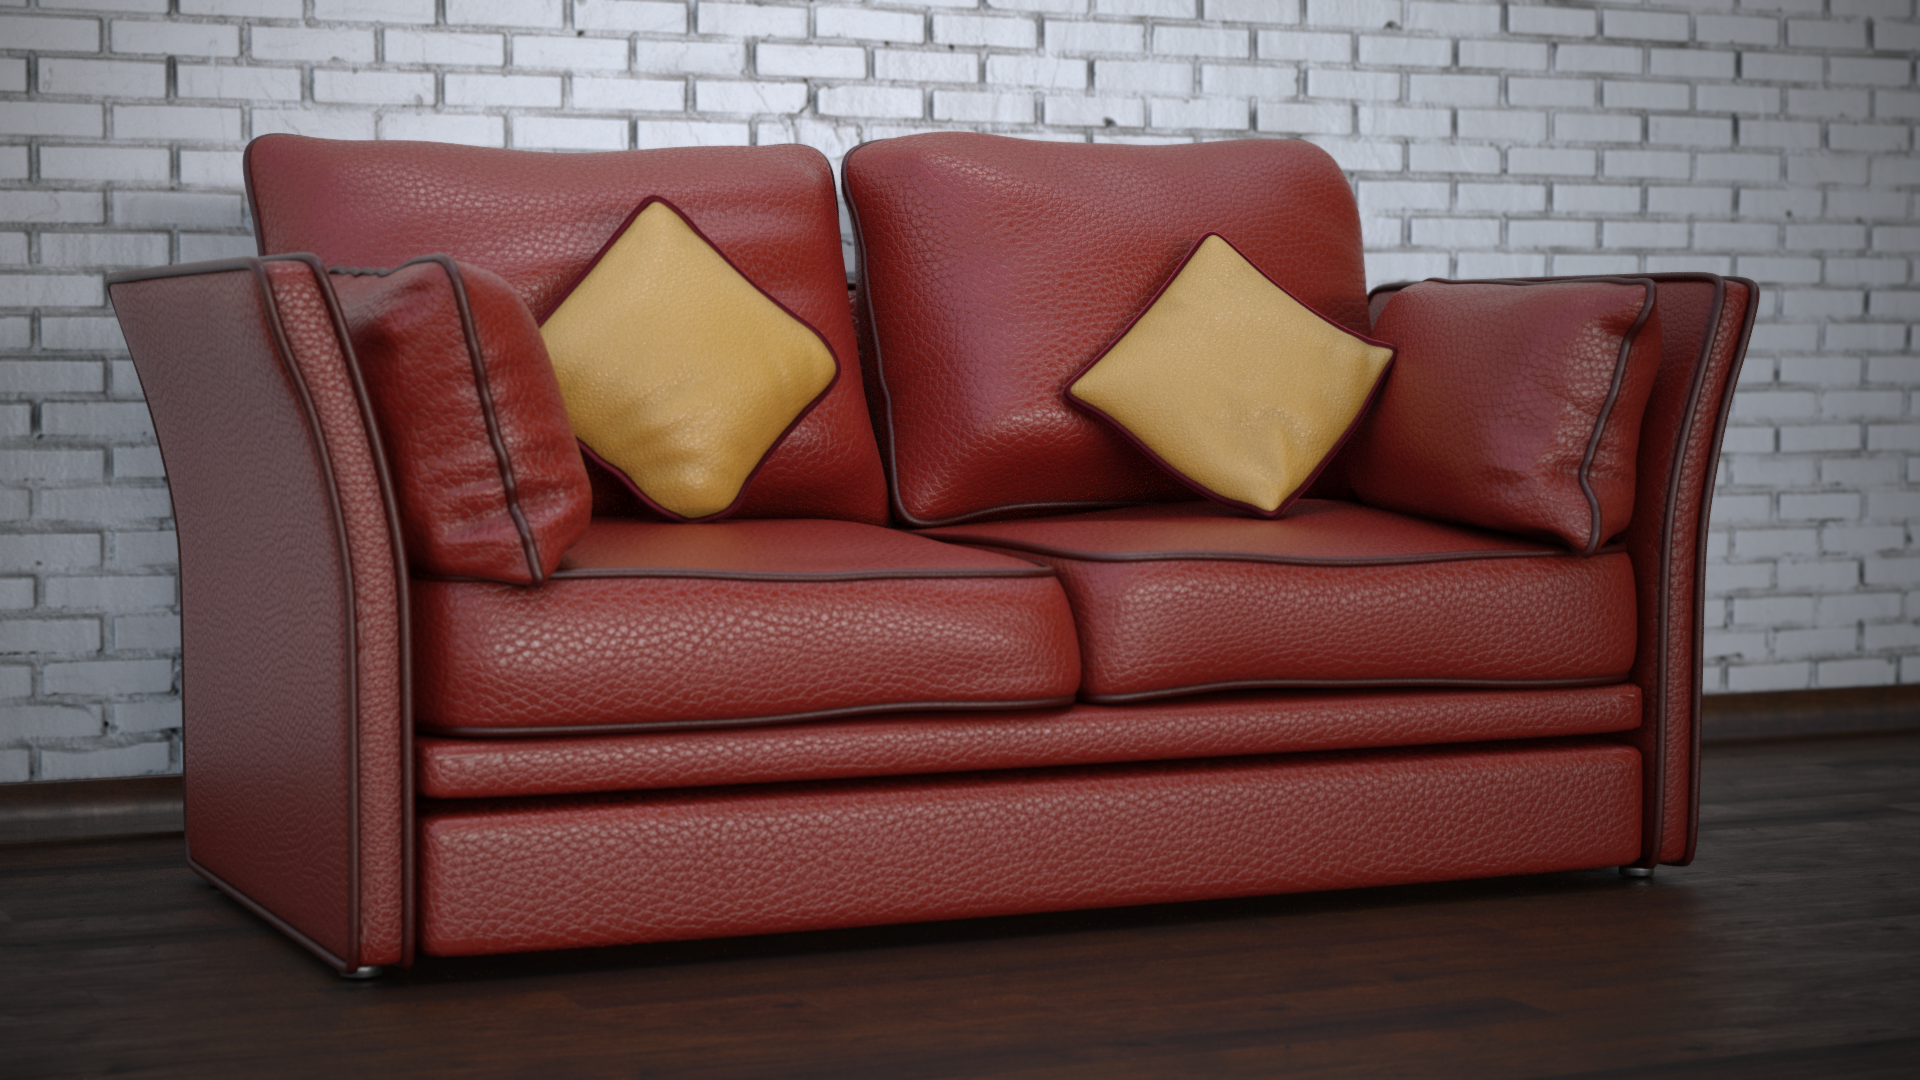 Sofa Suede Leather 3d Model Red Leather Sofa Leather Sofa